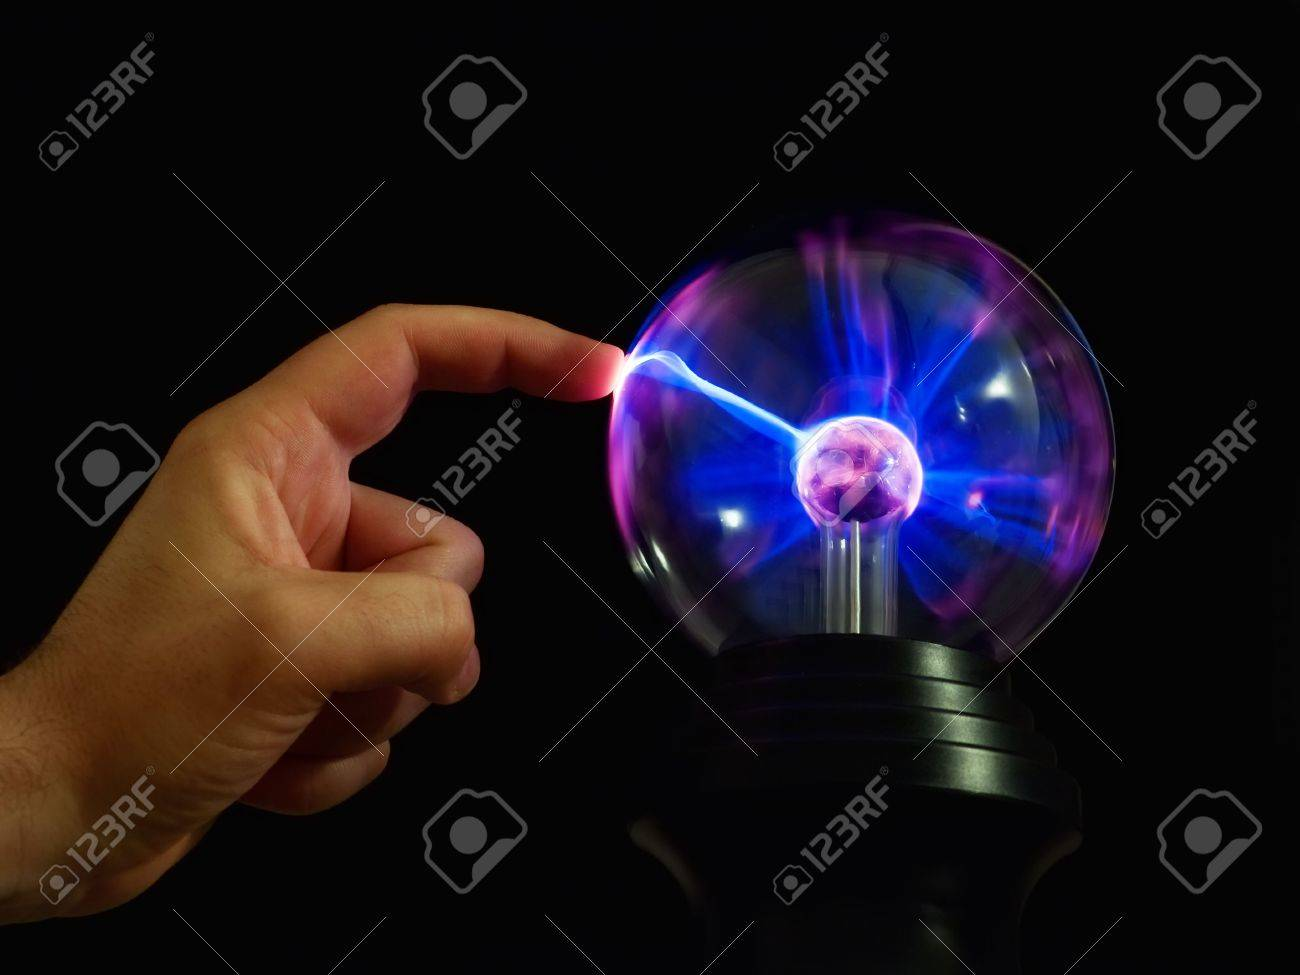 Metaphor about  connection between  people and technology. Stock Photo - 4824392